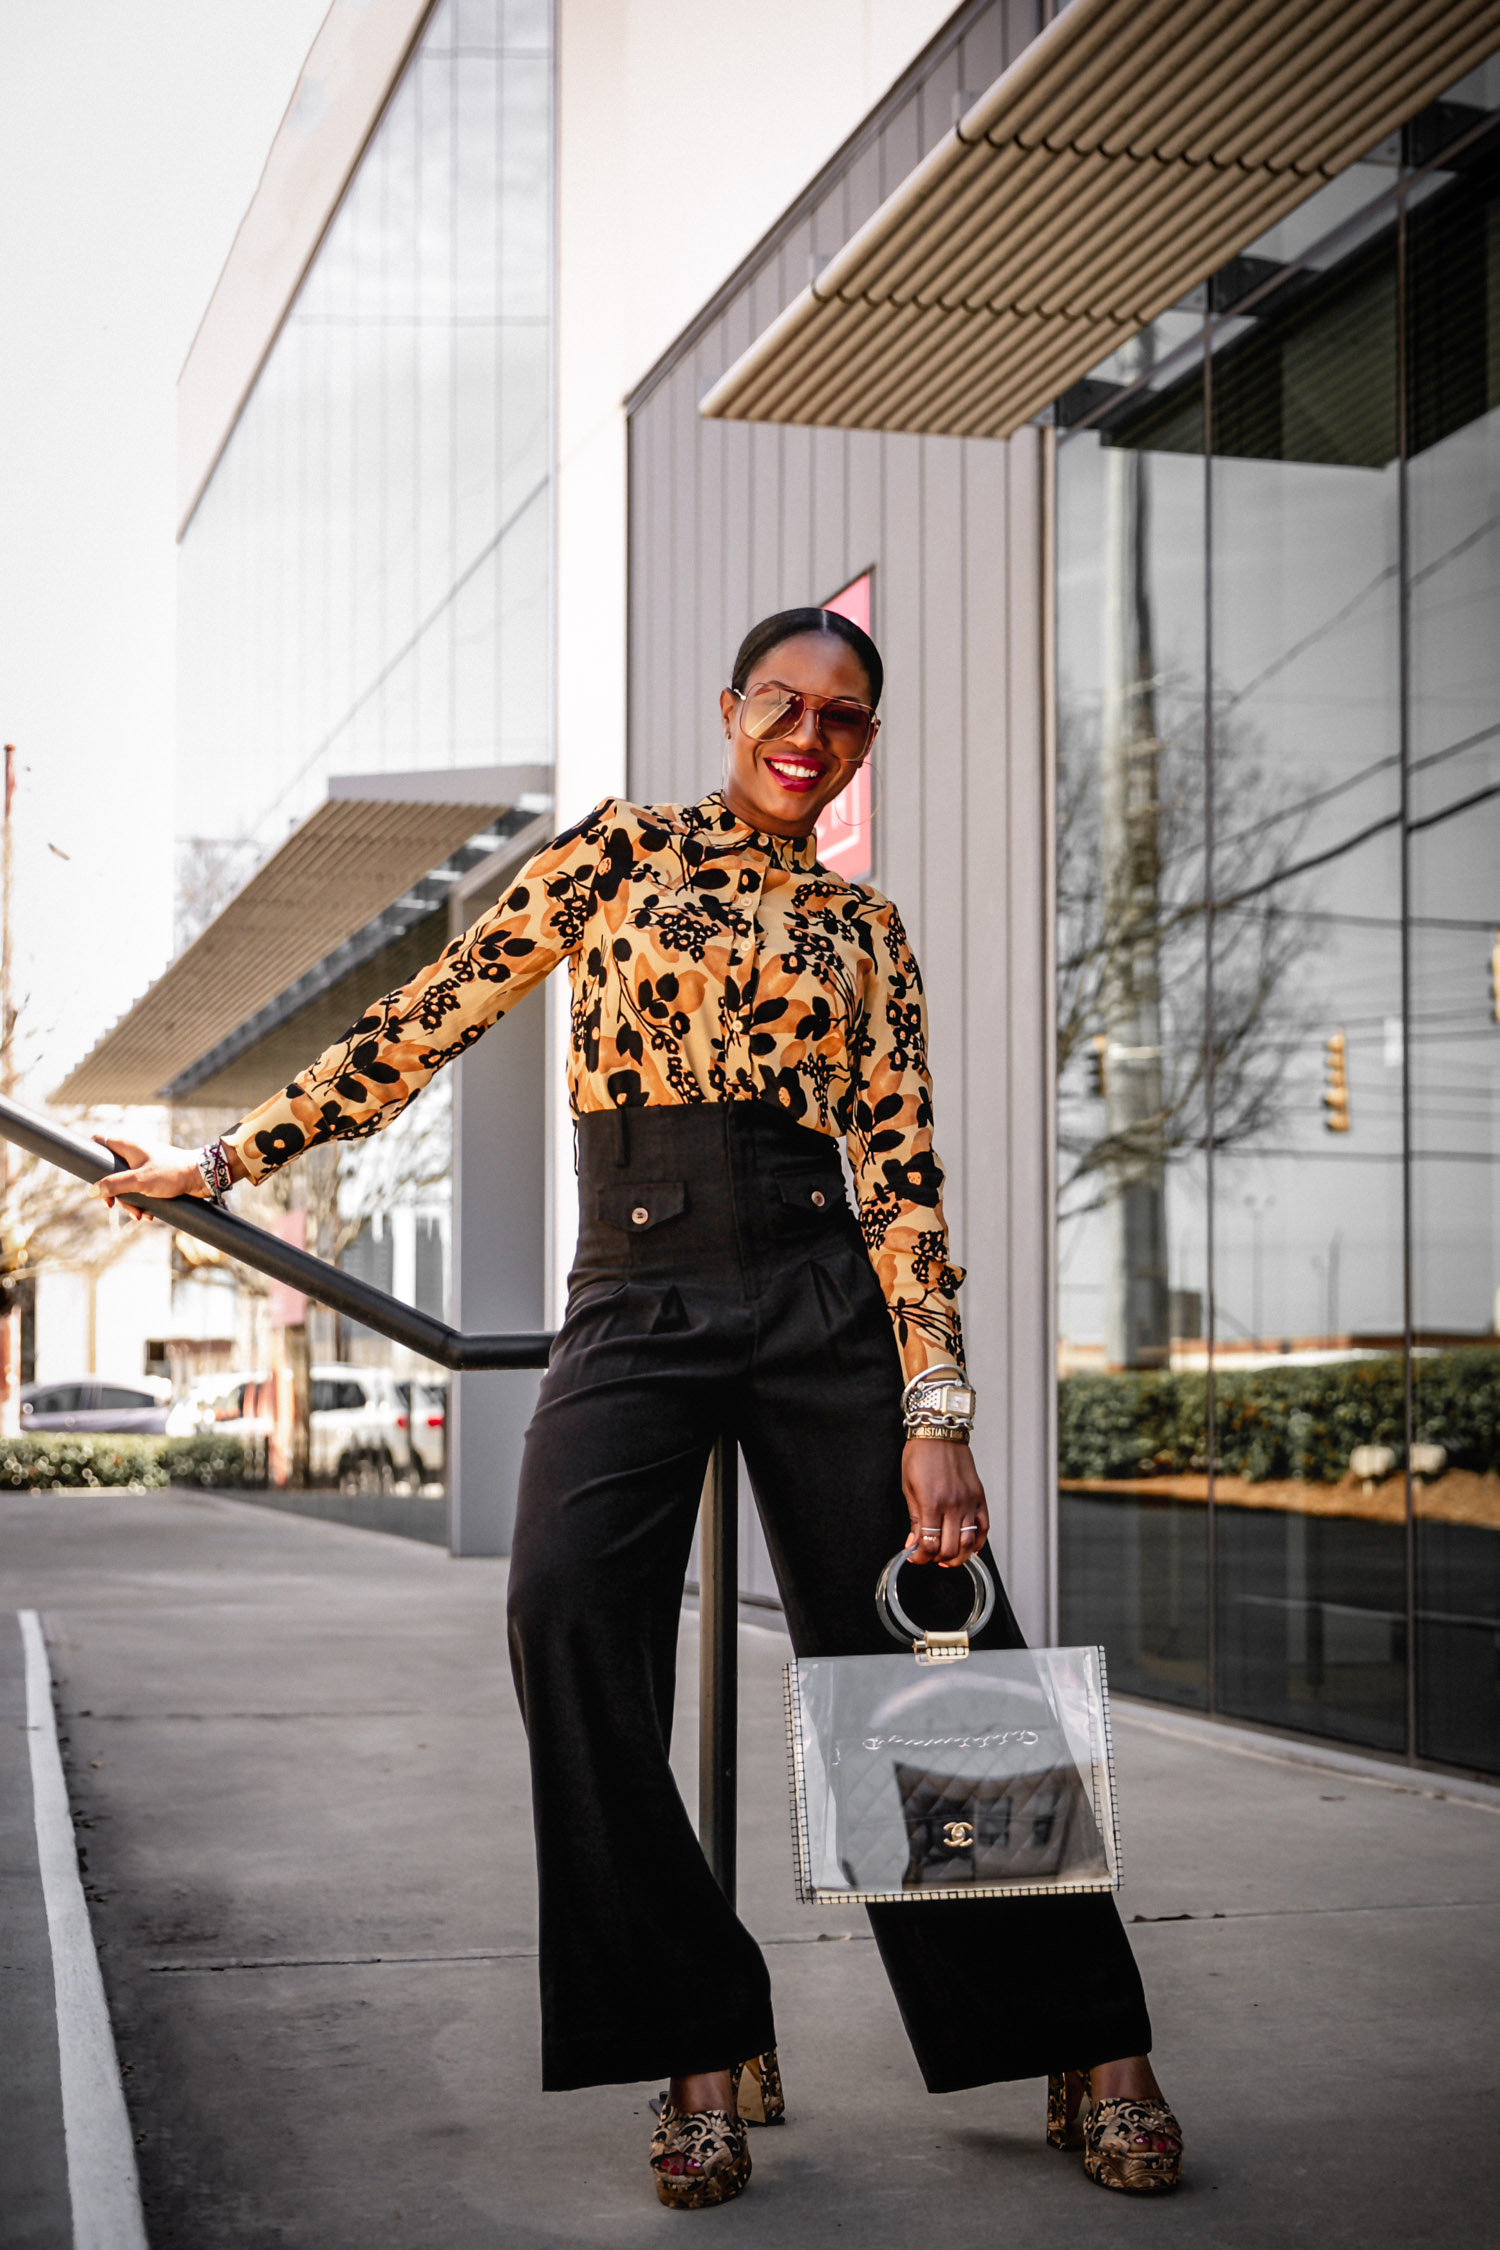 Atlanta fashion blogger Monica Awe-Etuk wearing & other stories dark floral blouse, black high-waist pants, tory burch platform sandals, oversized chloe sunglasses, clear bag and chanle 2.55 classic in cowhide. Shows you how to wear black pants in the spring and summer.